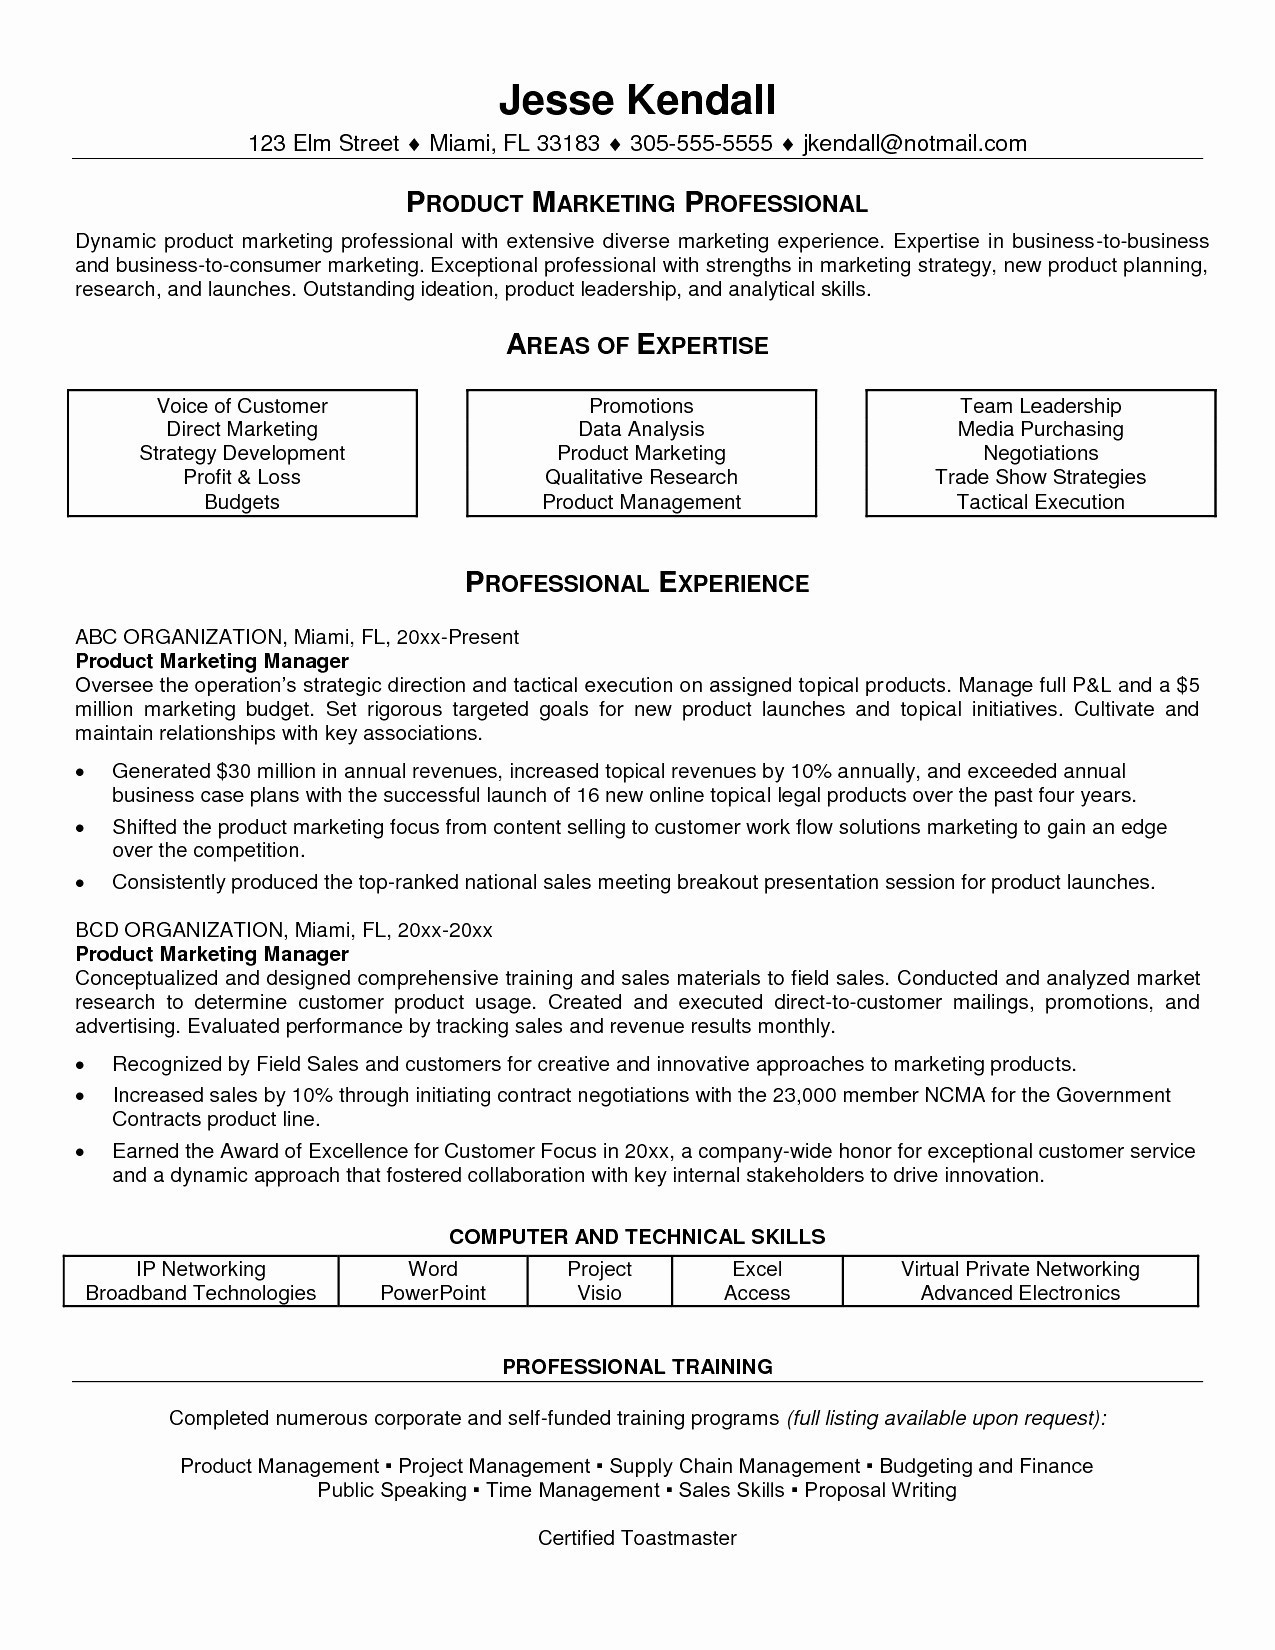 Computer Skills to List On Resume - Puter Skills for Resume Fresh Puter Skills for Resume Beautiful